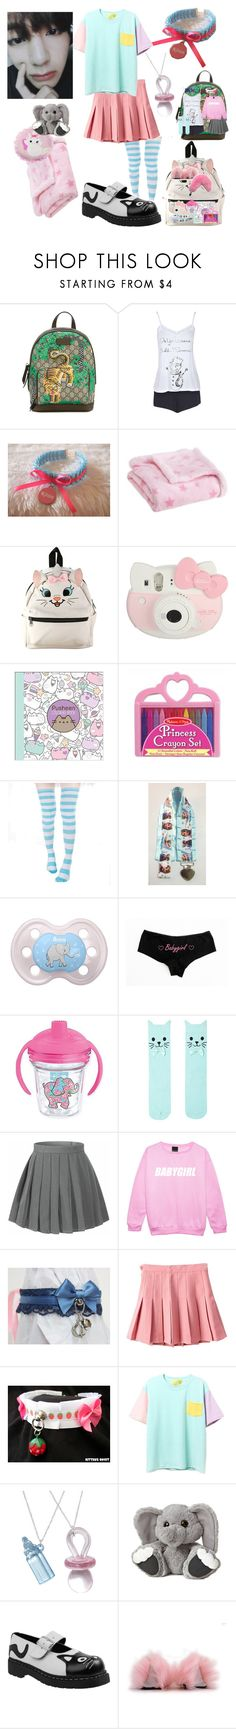 """""""little!anna sleepover!!"""" by dovelytaehyung ❤ liked on Polyvore featuring Gucci, Boohoo, Carter's, Disney, Hello Kitty, Pusheen, Melissa & Doug, Tervis, Hot Topic and T.U.K."""